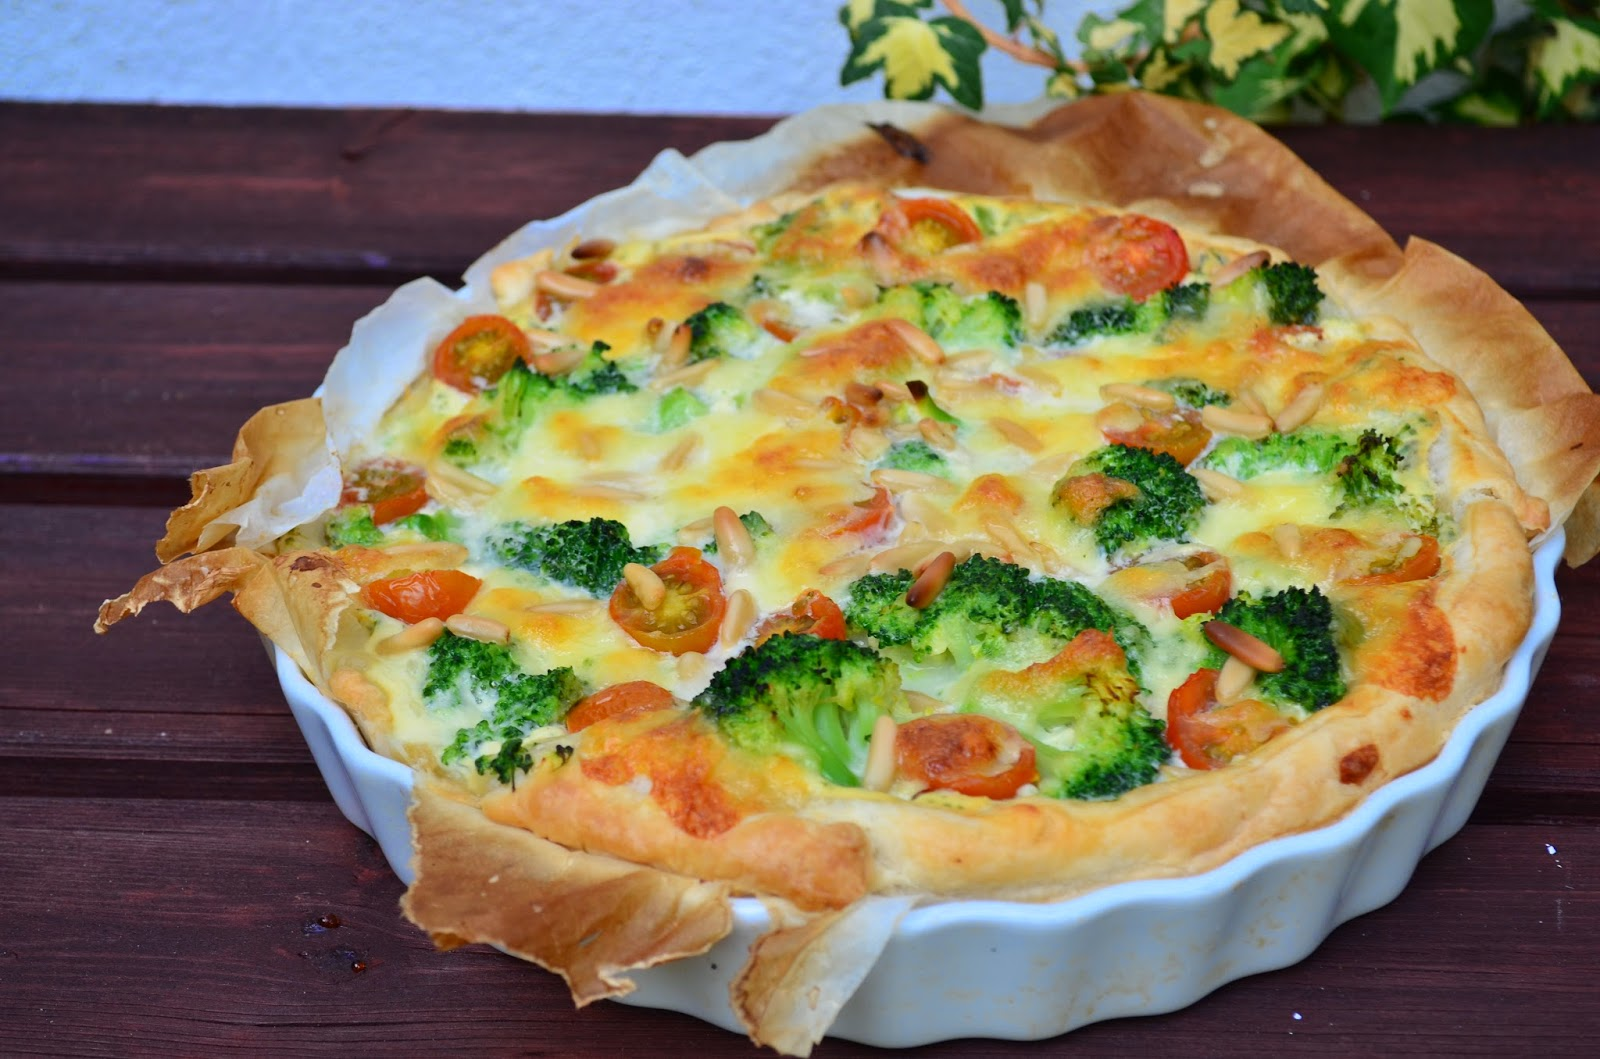 estrellacanela brokkoli bl tterteig quiche mit ricotta kirschtomaten mozzarella und pinienkerne. Black Bedroom Furniture Sets. Home Design Ideas